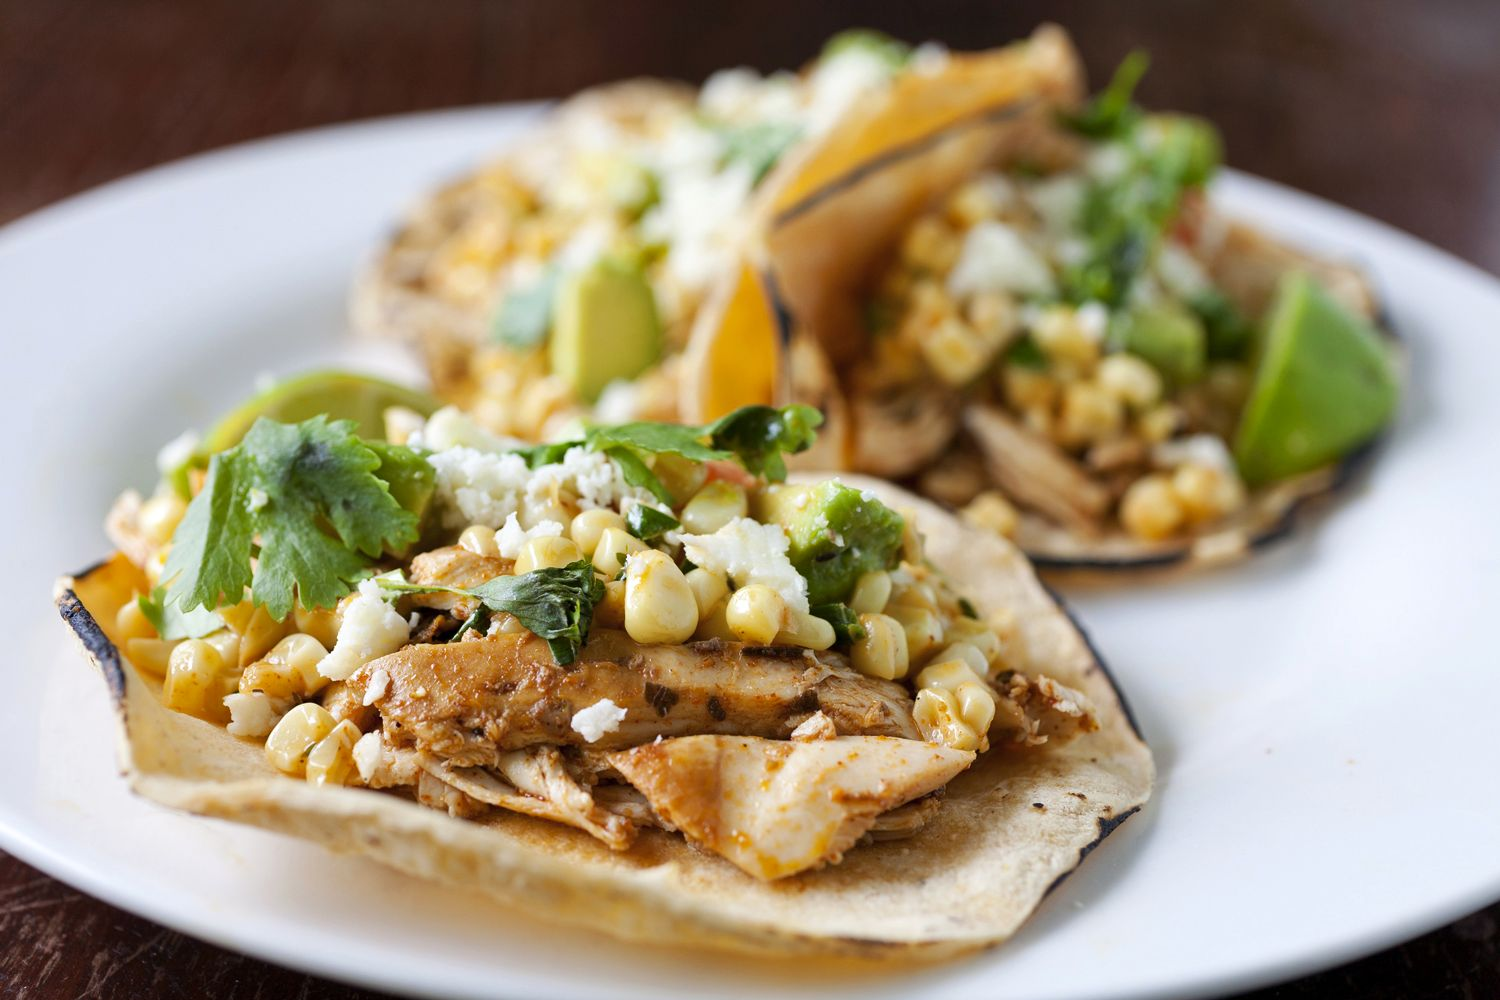 http://www.partial-ingredients.com/wp-content/uploads/2012/09/corn-taco.jpg